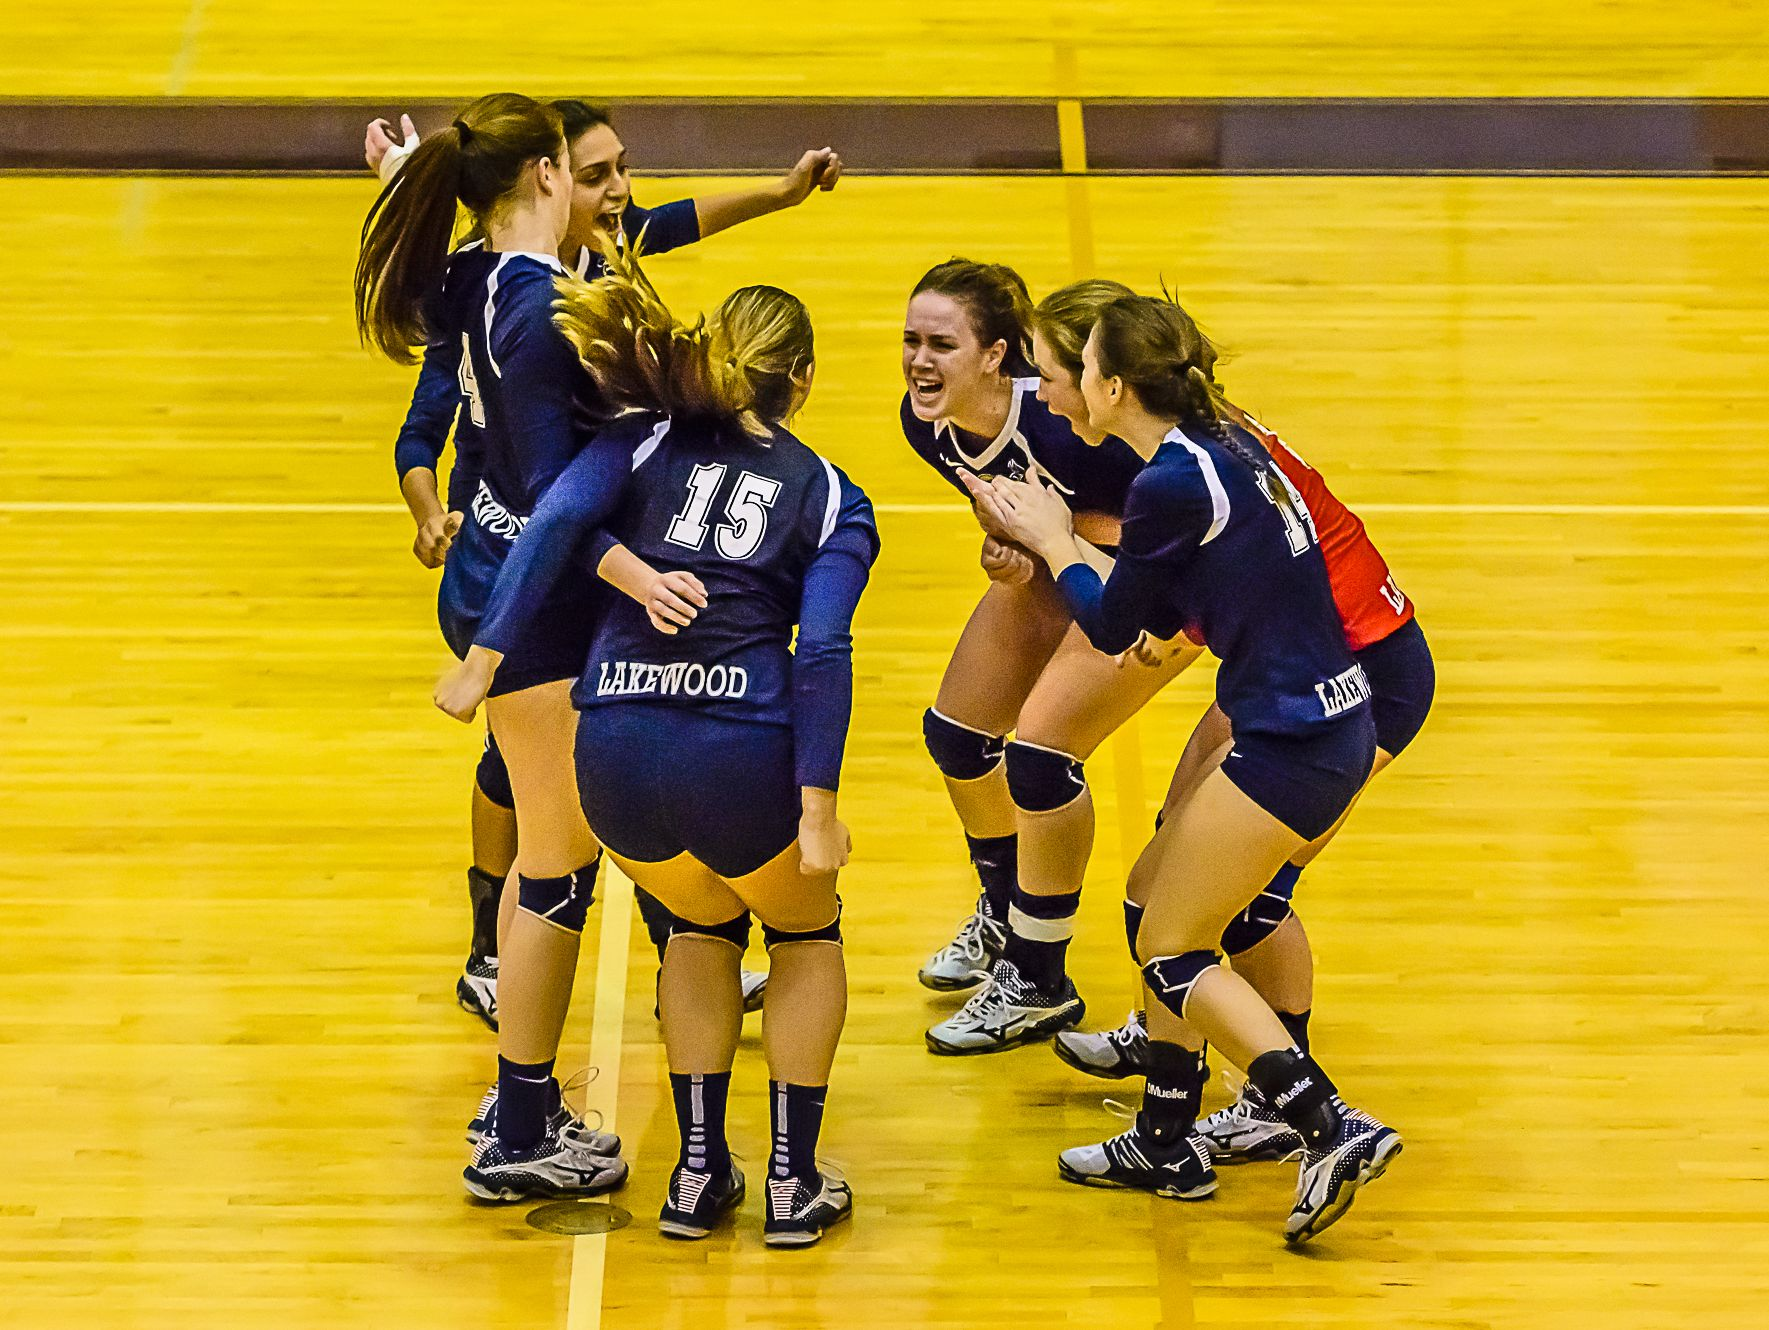 Members of the Lakewood volleyball team celebrate their straight set win over Olivet during their Class B regional semifinal game Tuesday, Nov. 8, 2016, in Fowlerville.